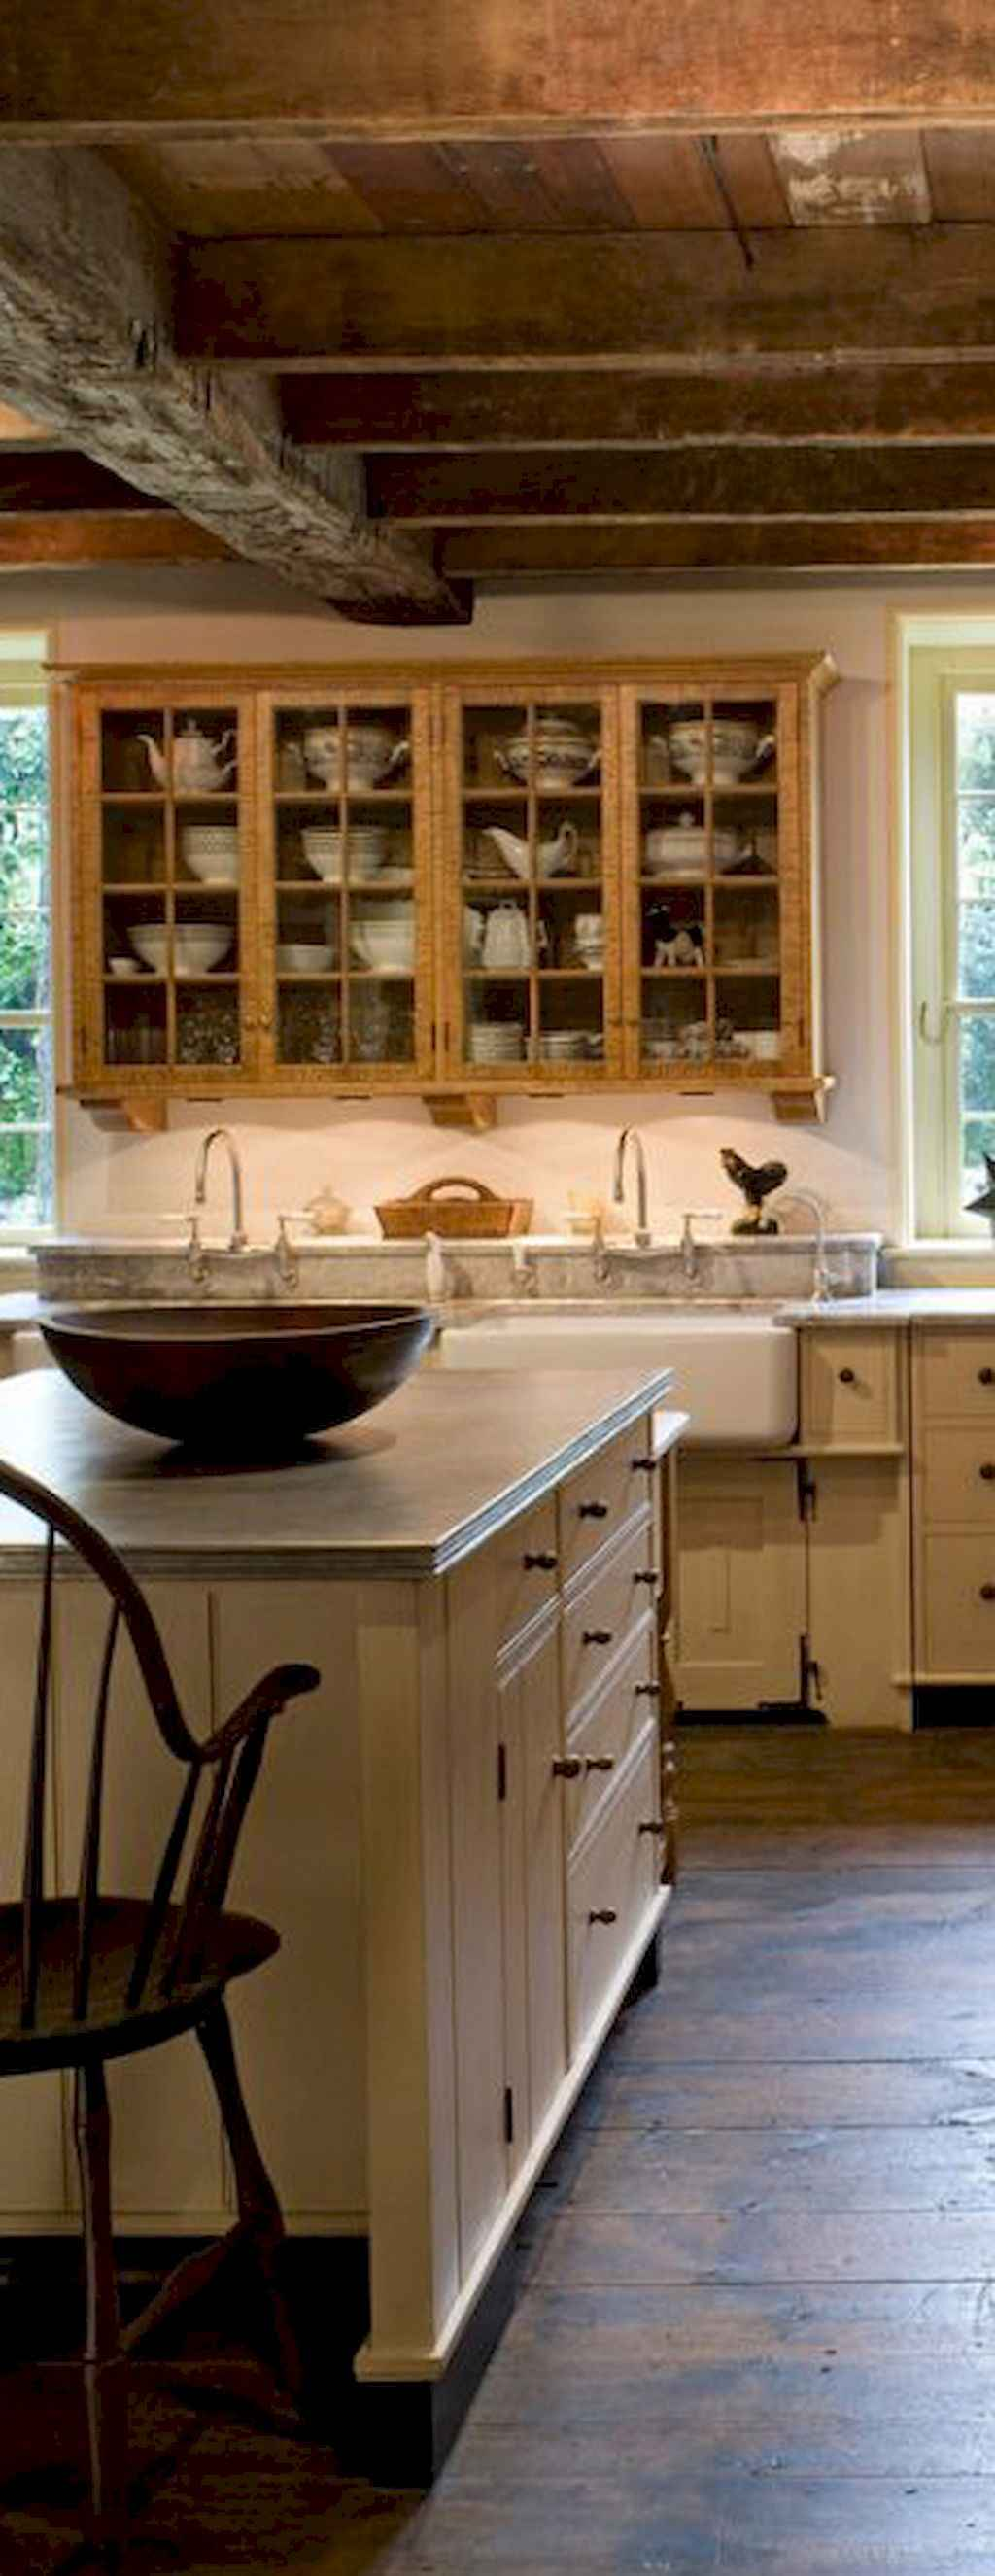 Incredible french country kitchen design ideas (20)